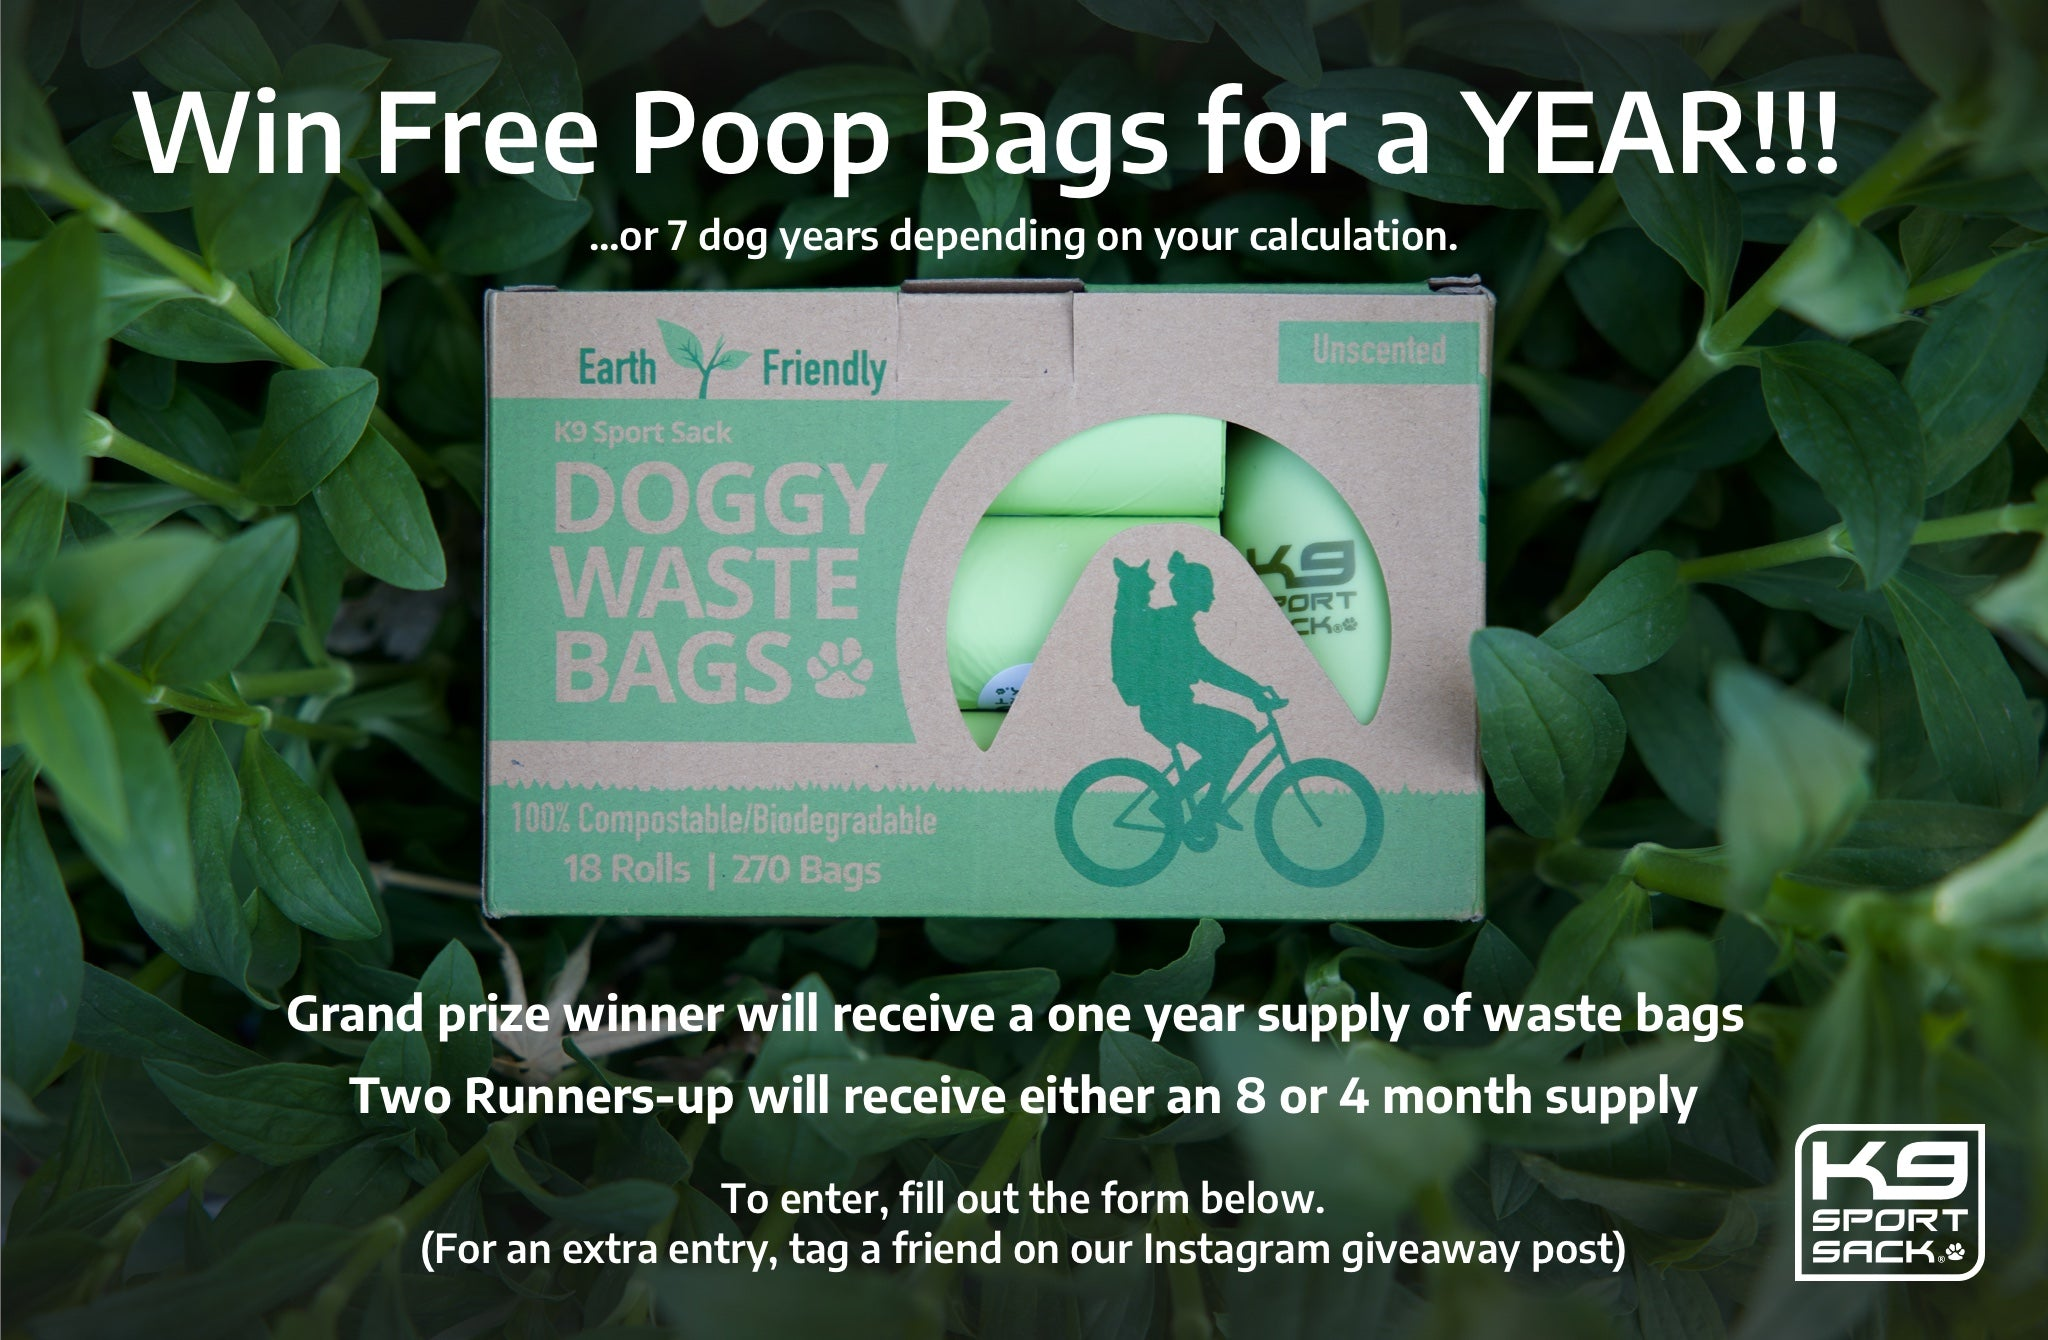 Win free poop bags for a year! Grand prize winner will receive a one year supply of waste bags, two runners-up will receive either an 8 or 4 month supply. To enter, fill out the form below. For an extra entry, tag a friend on our instagram giveaway post.